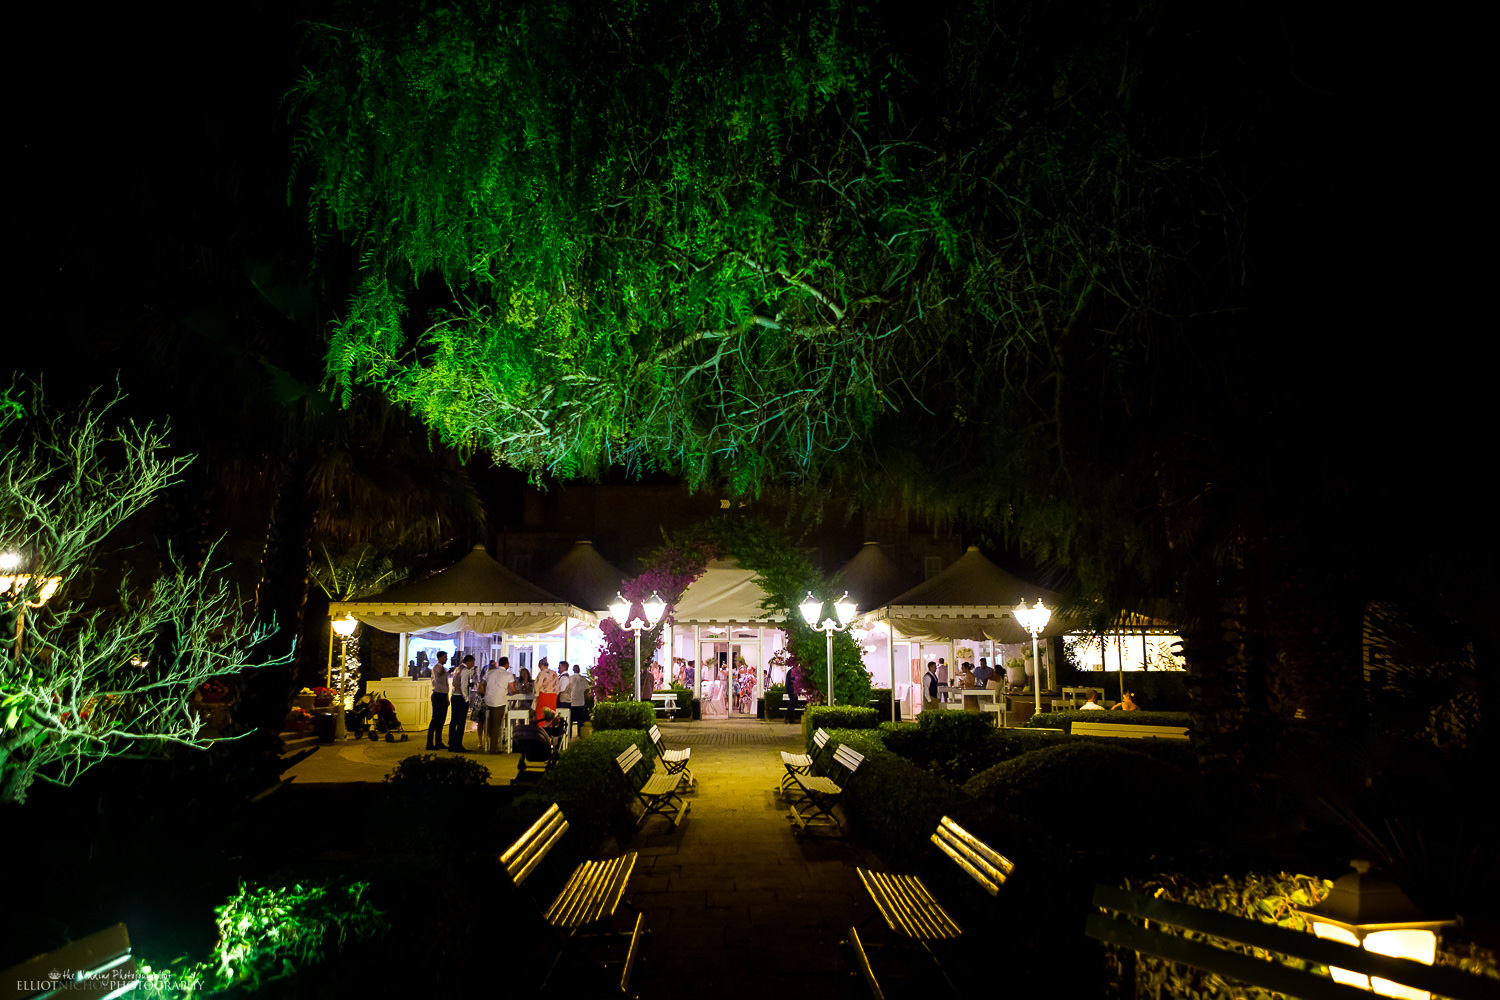 View of the wedding venue Villa Arrigo from outside in the gardens at night